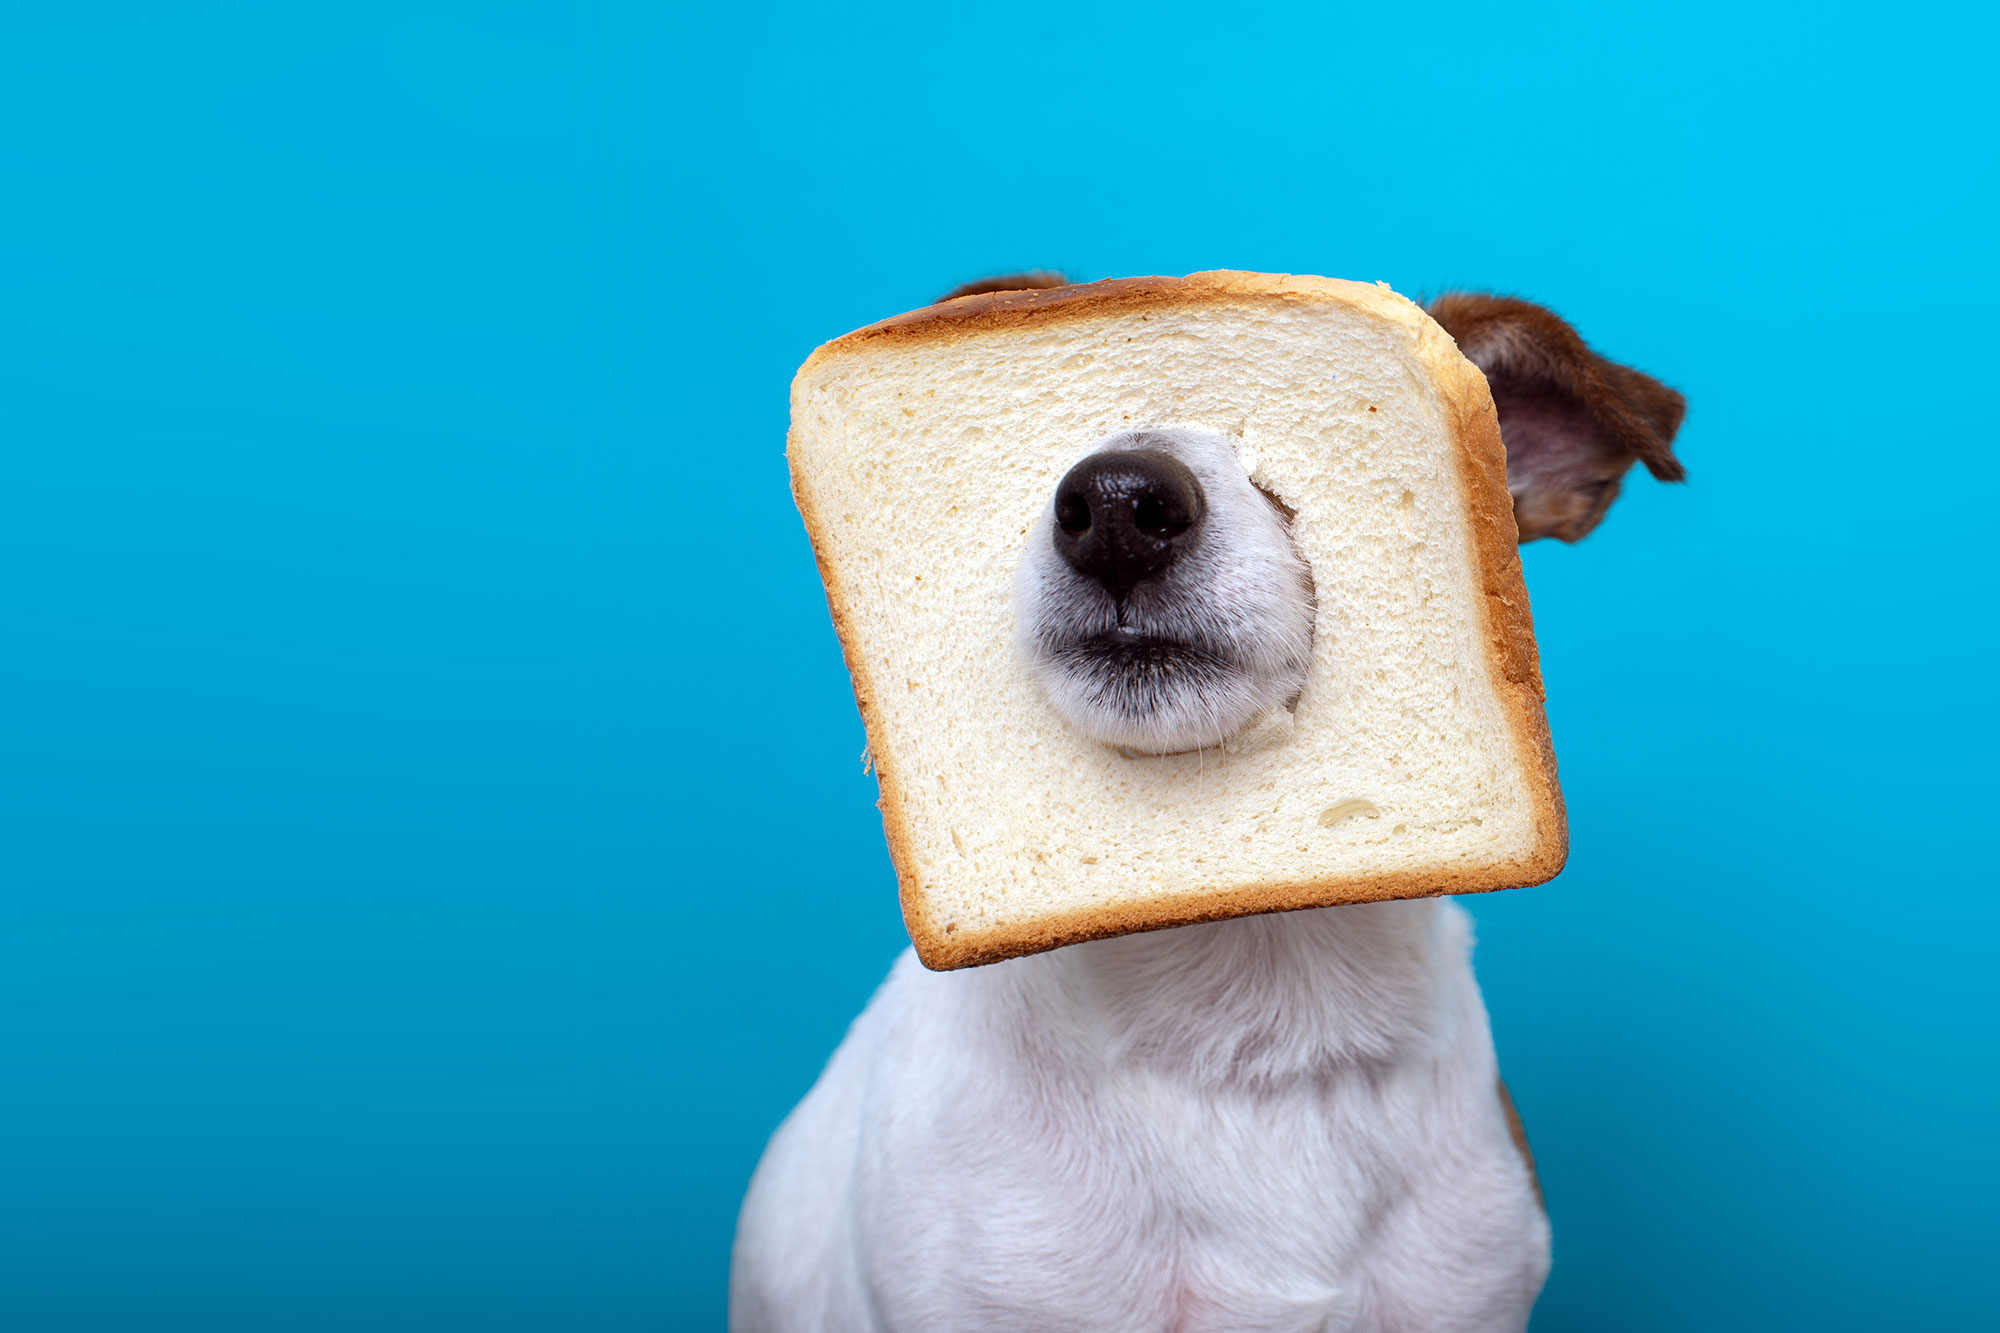 white dog with bread slice over nose